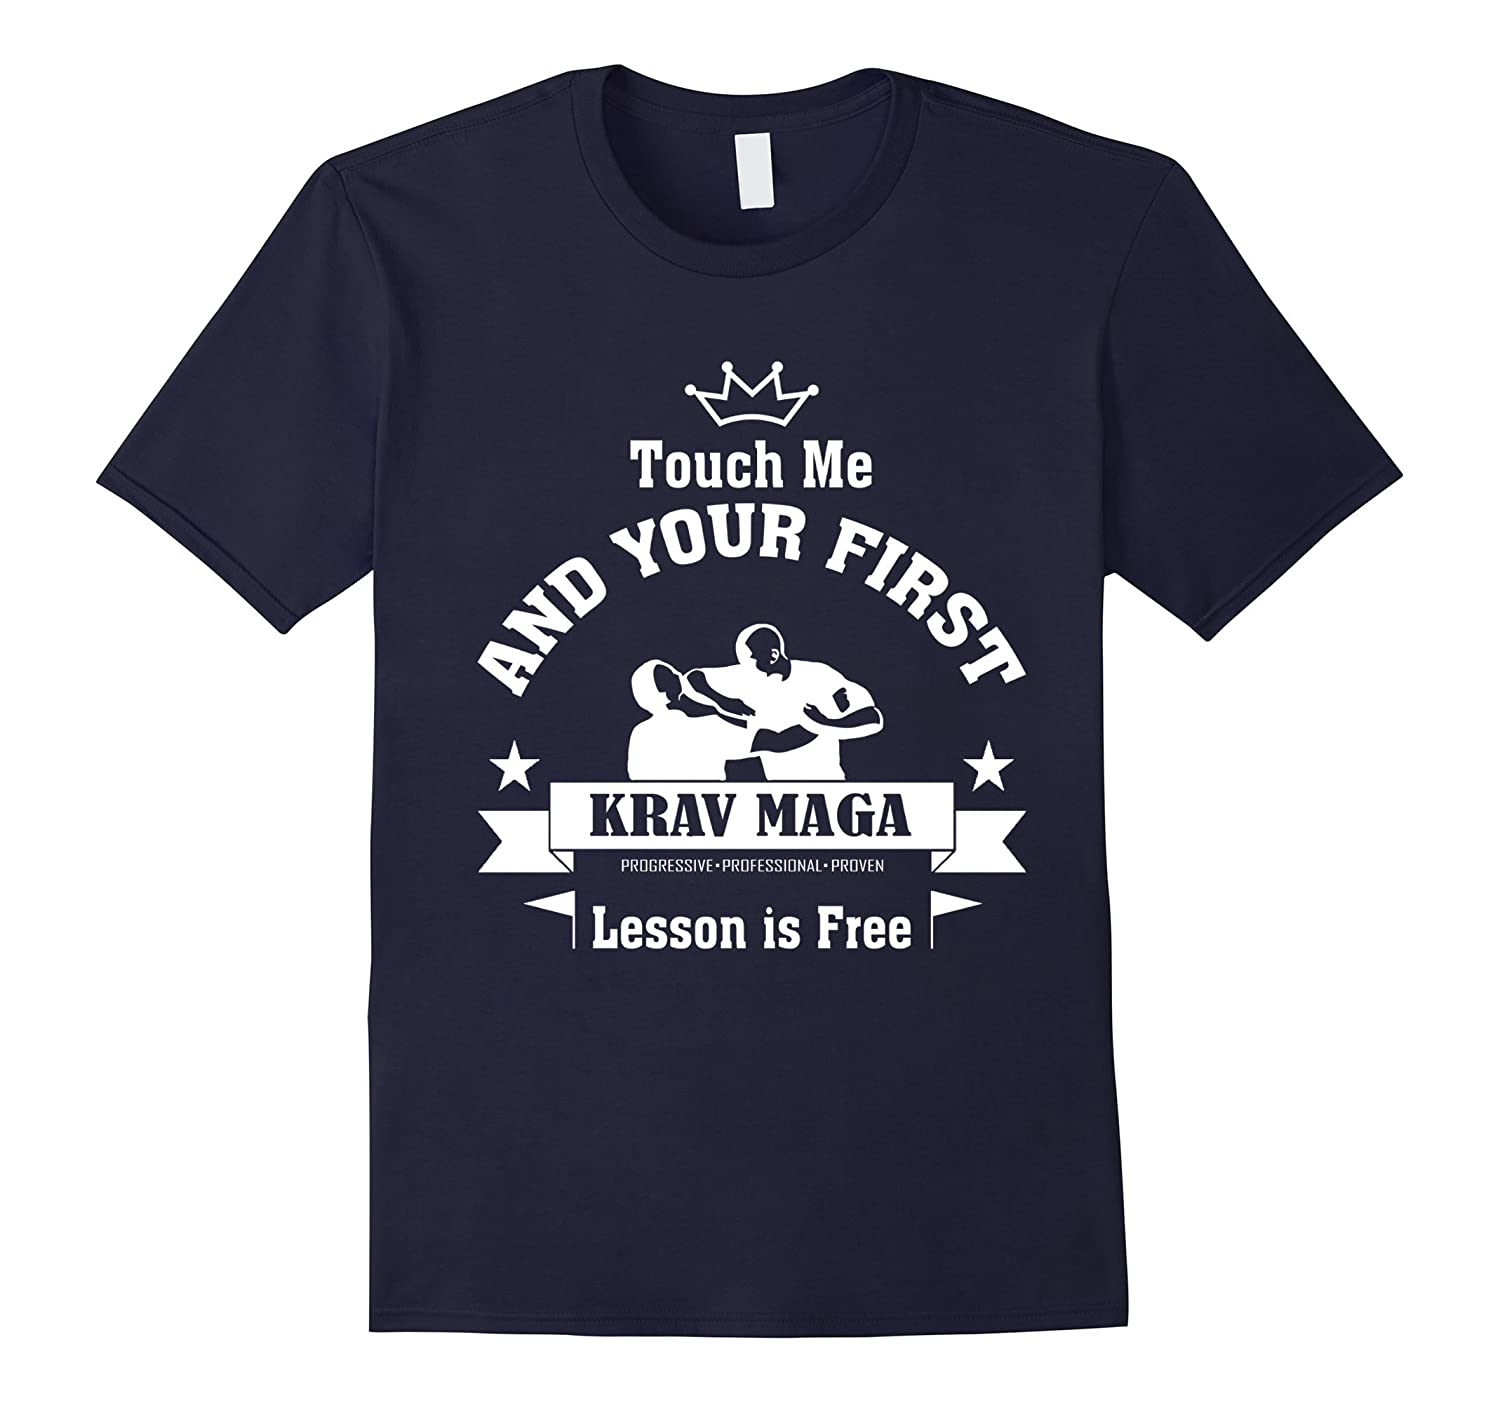 Touch Me Shirt And Your First Free Less Gift T-shirt-Art